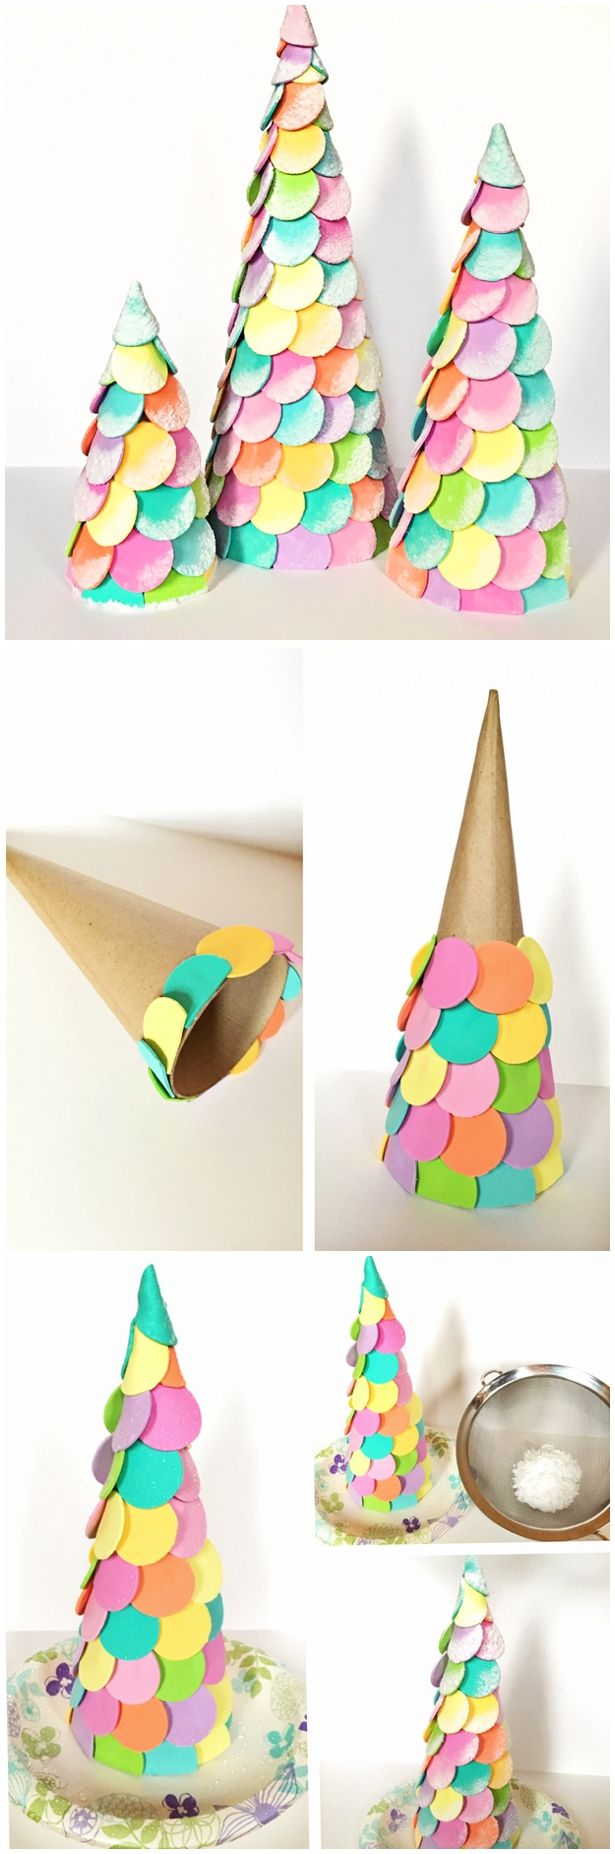 DIY CANDY CHRISTMAS CONE TREES | Pinterest | Candy cone, Christmas ...